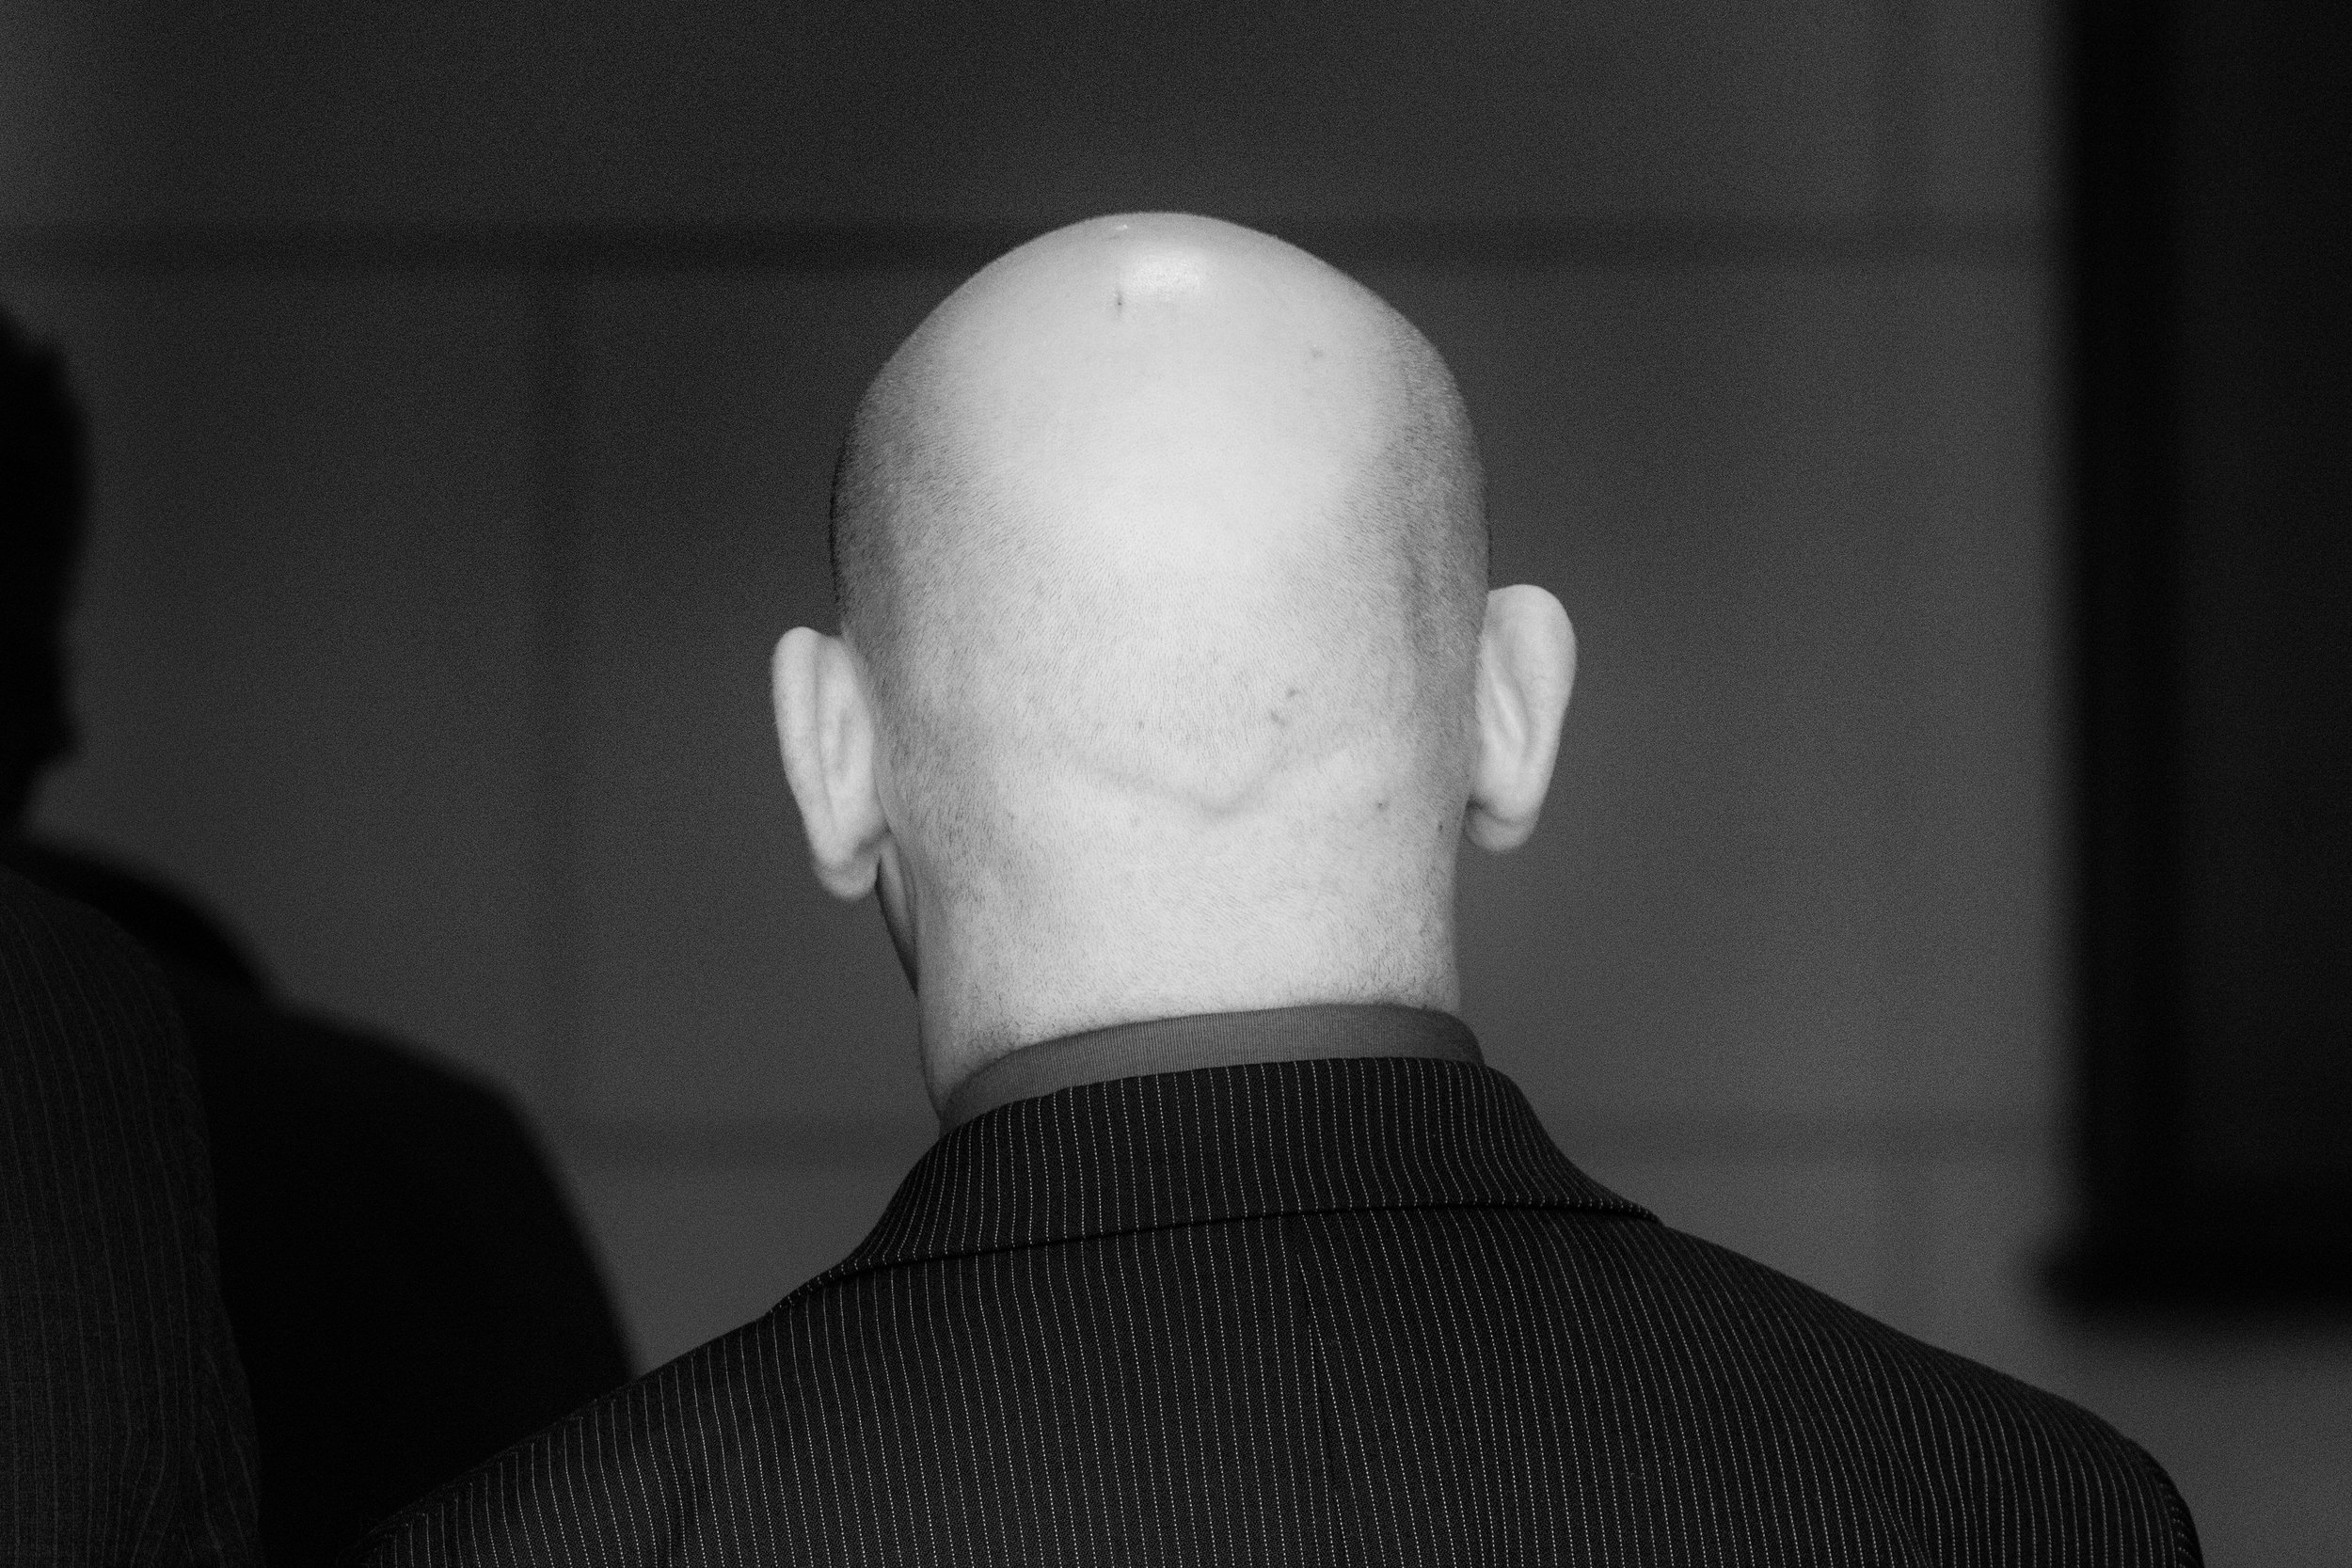 Black and White wedding portrait of the back of a guest's head